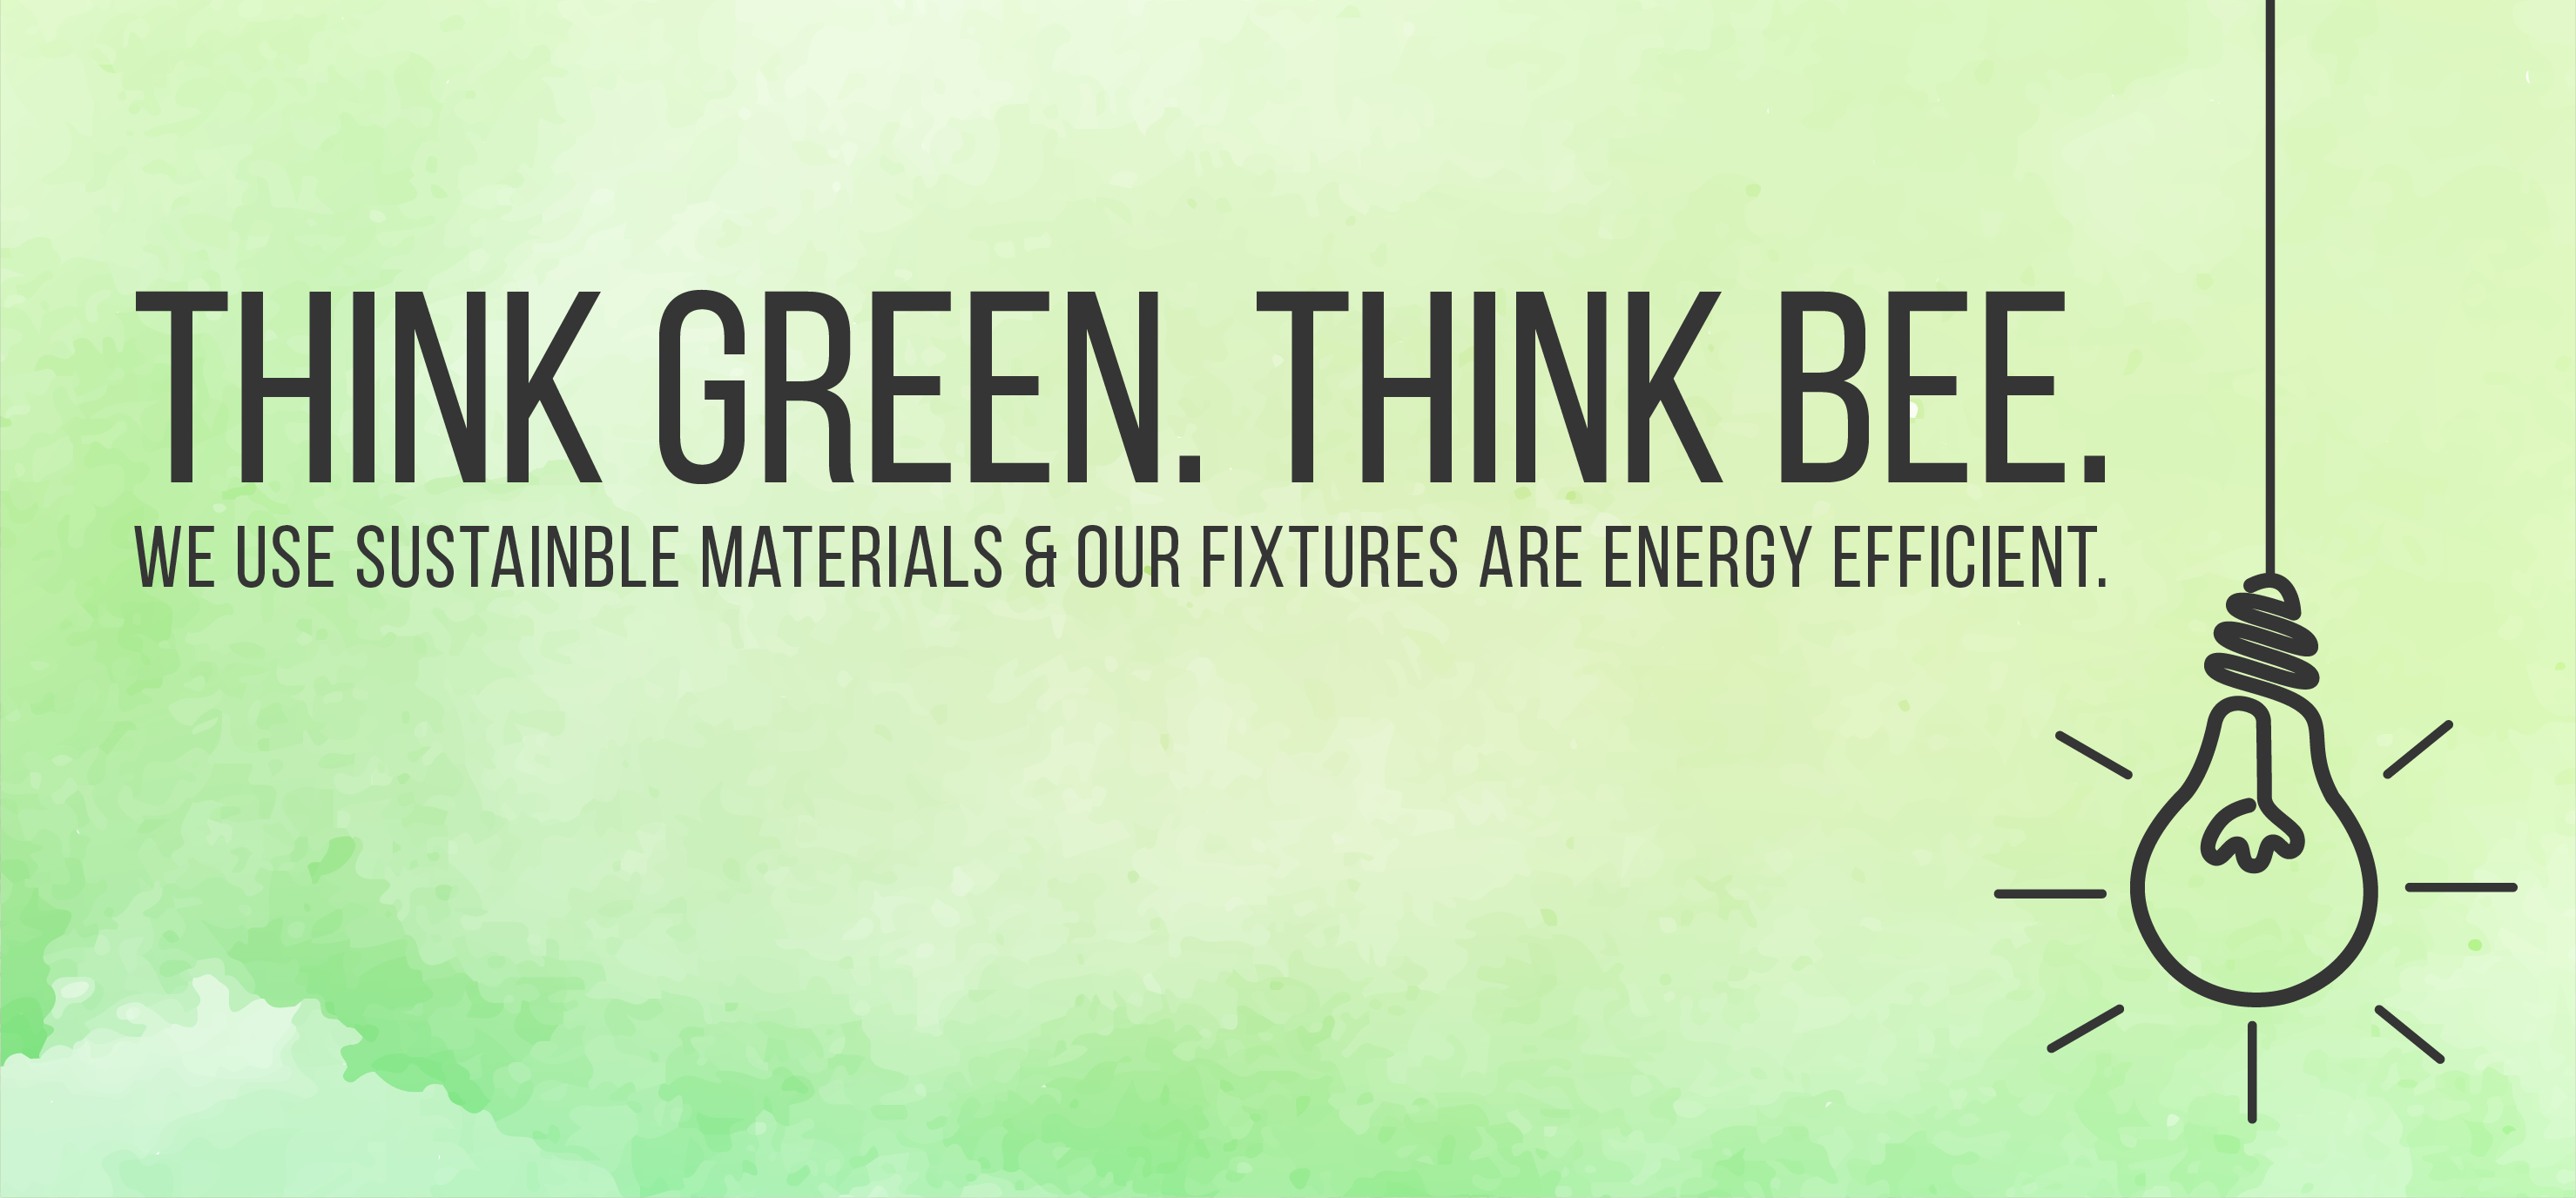 LANDING PAGE GRAPHIC - SUSTAINBILITY